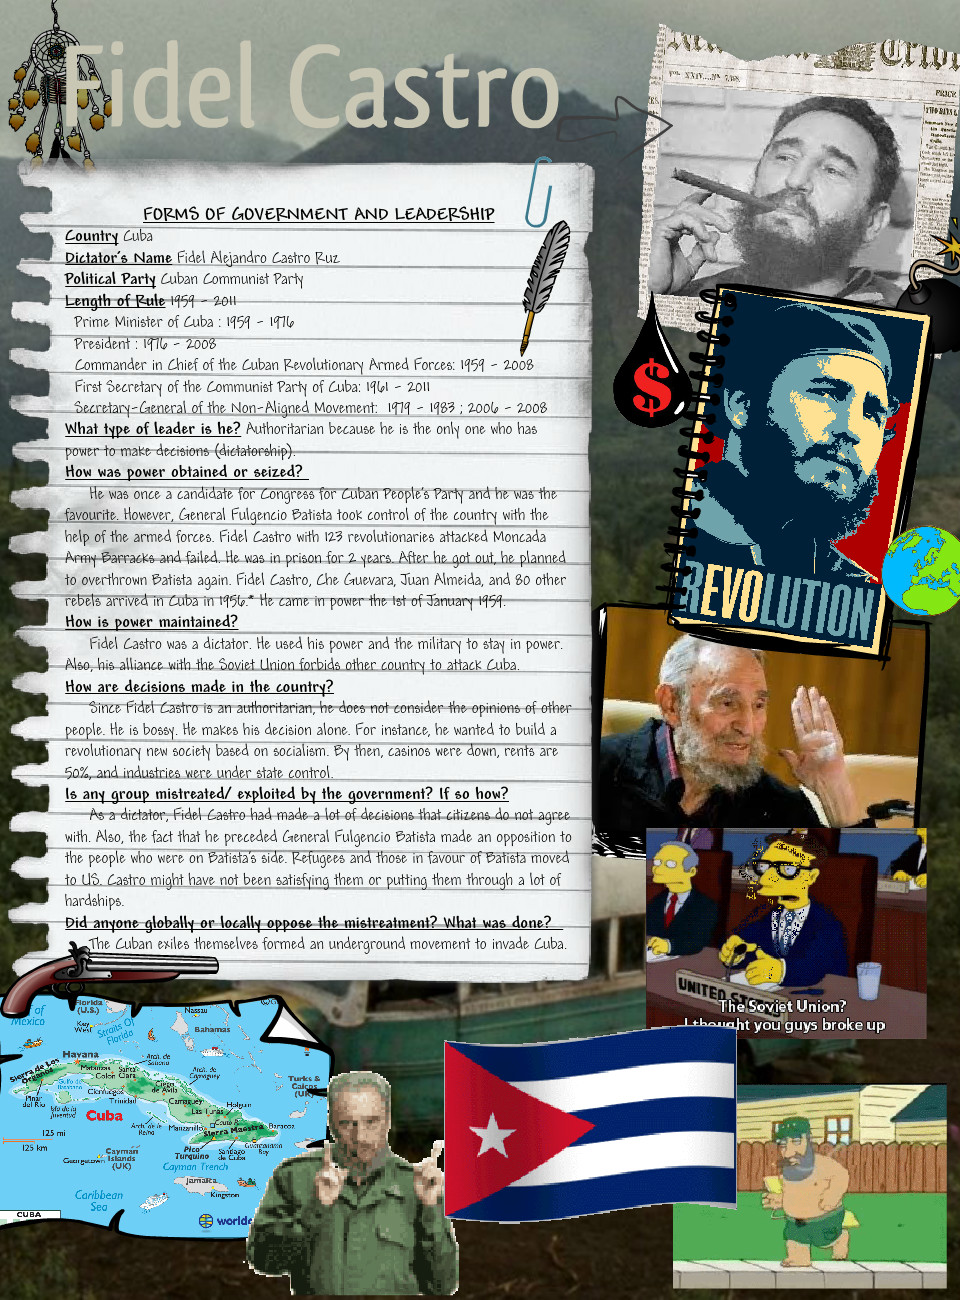 Forms of Government and Leadership: Fidel Castro